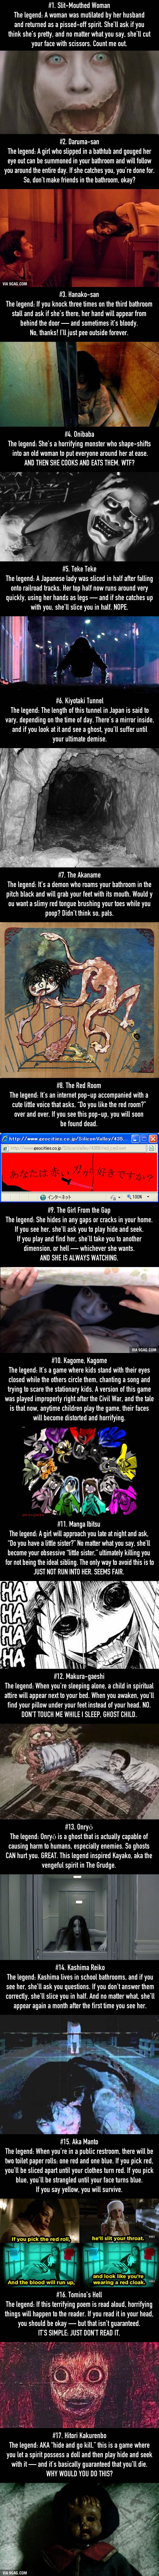 Warning: Do NOT read these 17 Japanese urban legends before bed. They will scare the shit out of you. Trust me...